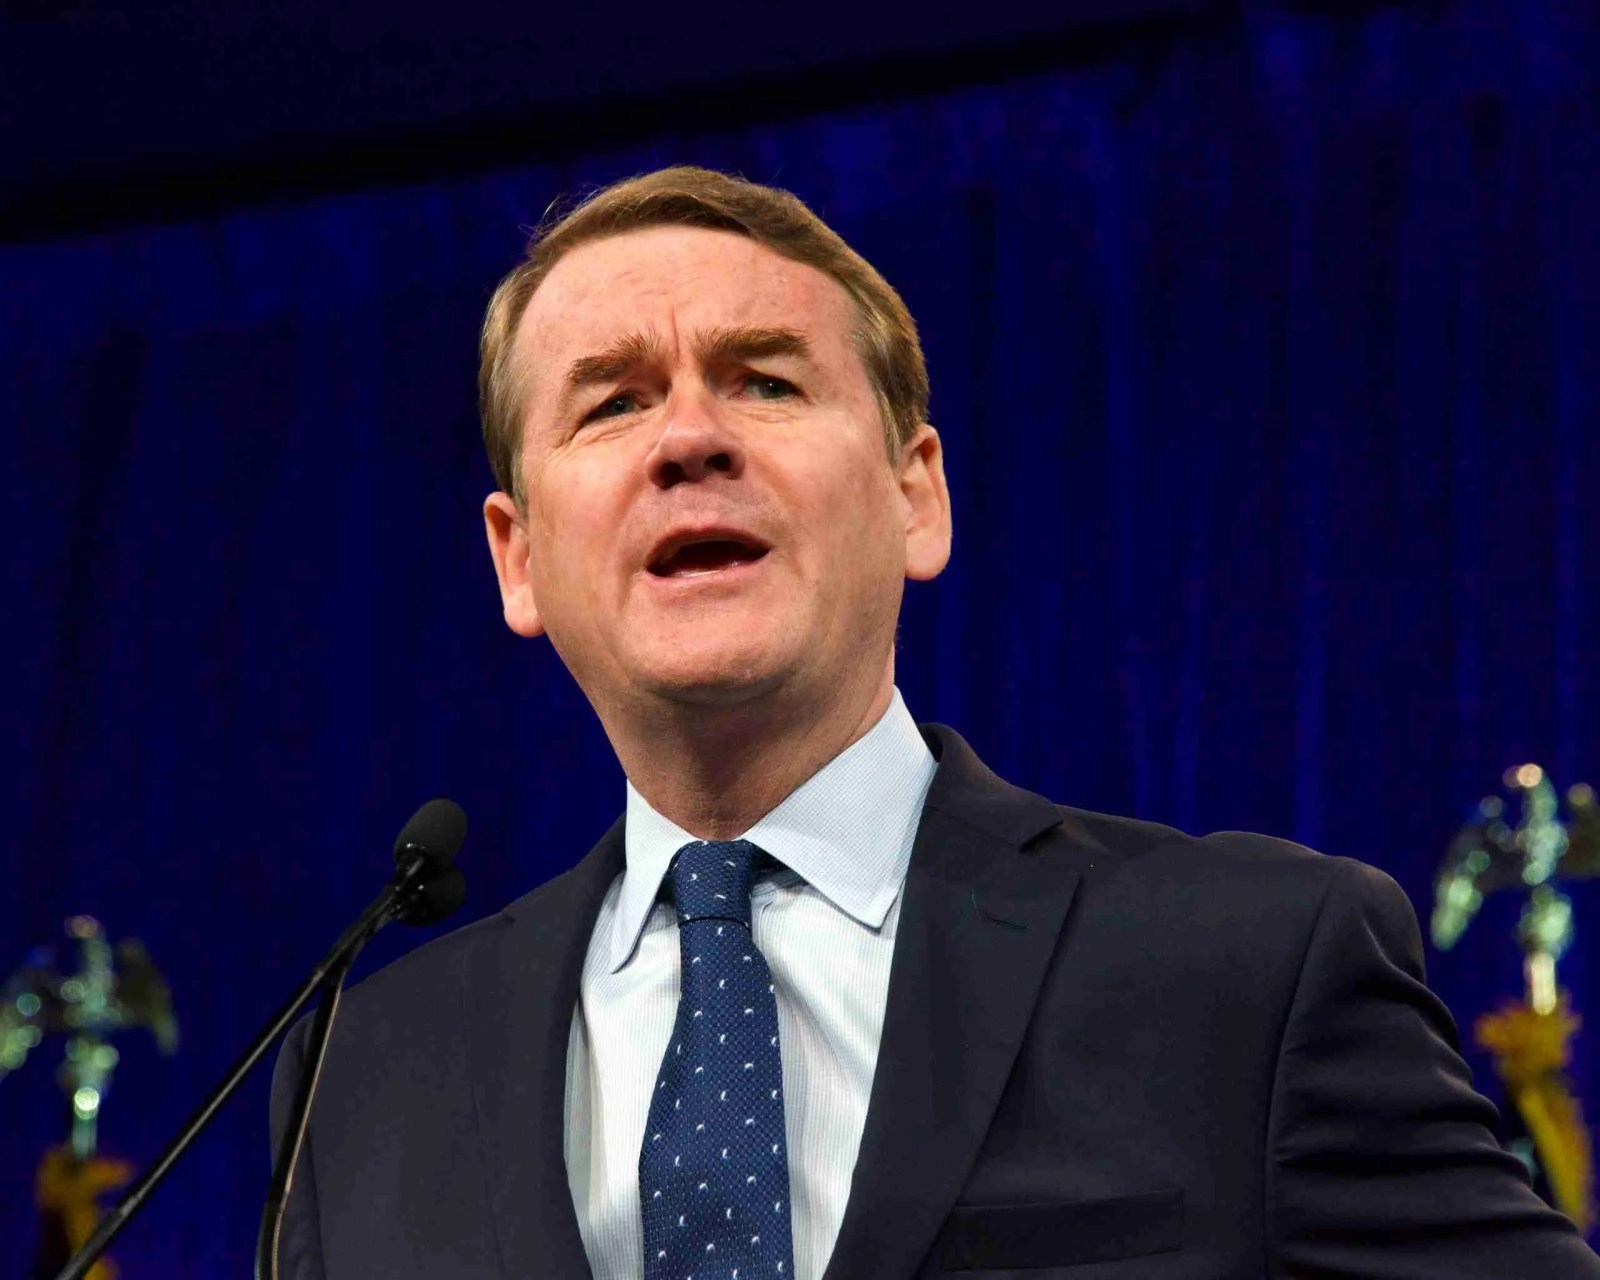 Michael Bennet Officially Suspends his Campaign for President 7